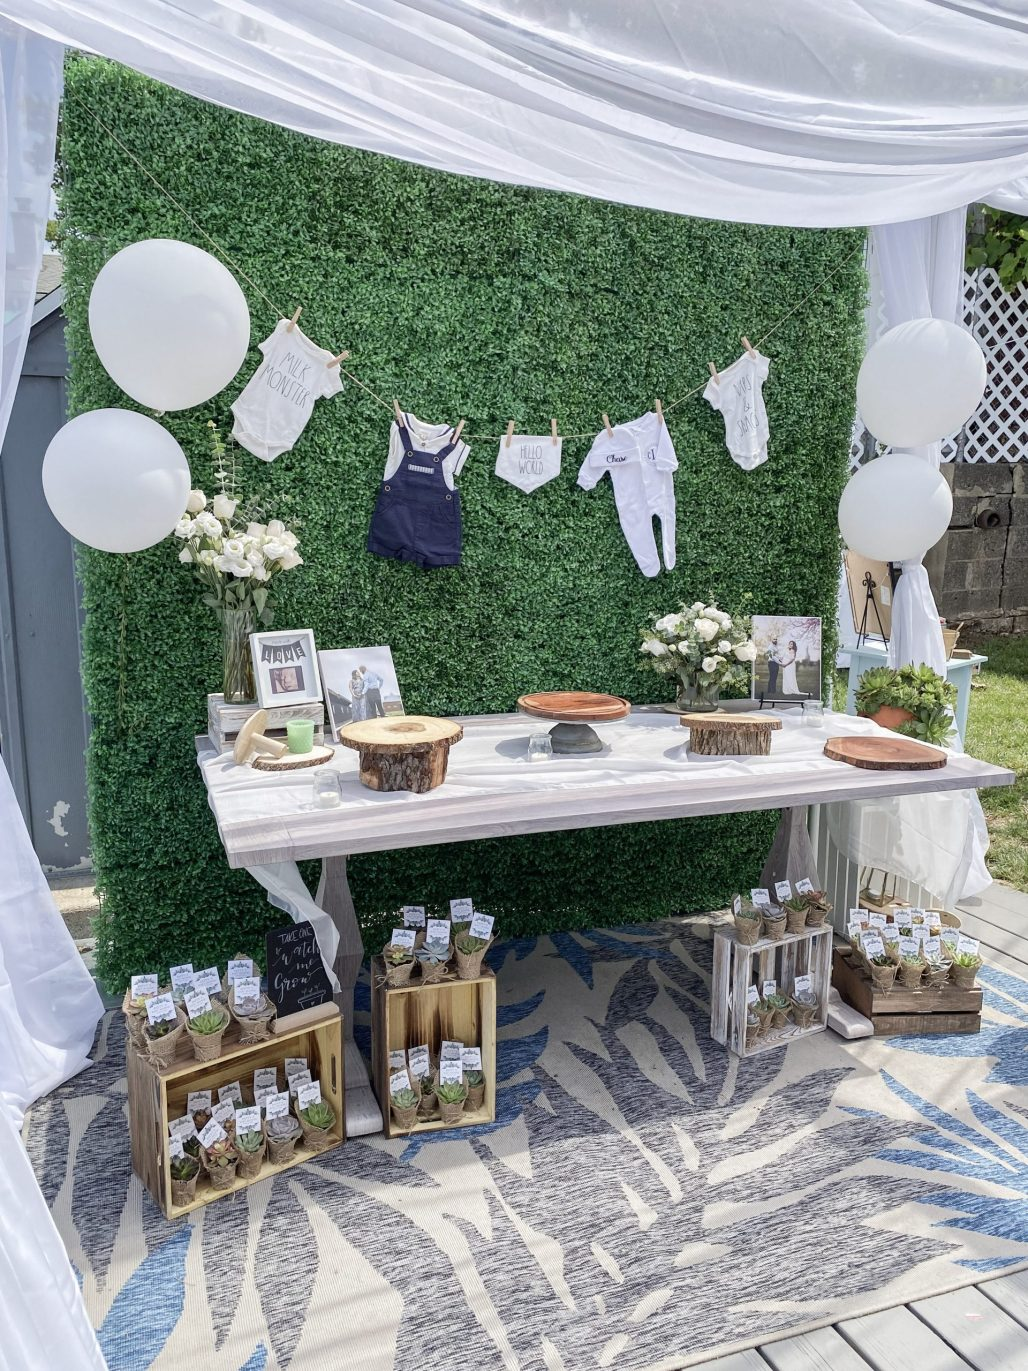 Outside Baby Shower : outside, shower, Rescheduled, Shower, Becomes, Calming, Outdoor, Affair, Party, During, Covid-19…, Dreamery, Events